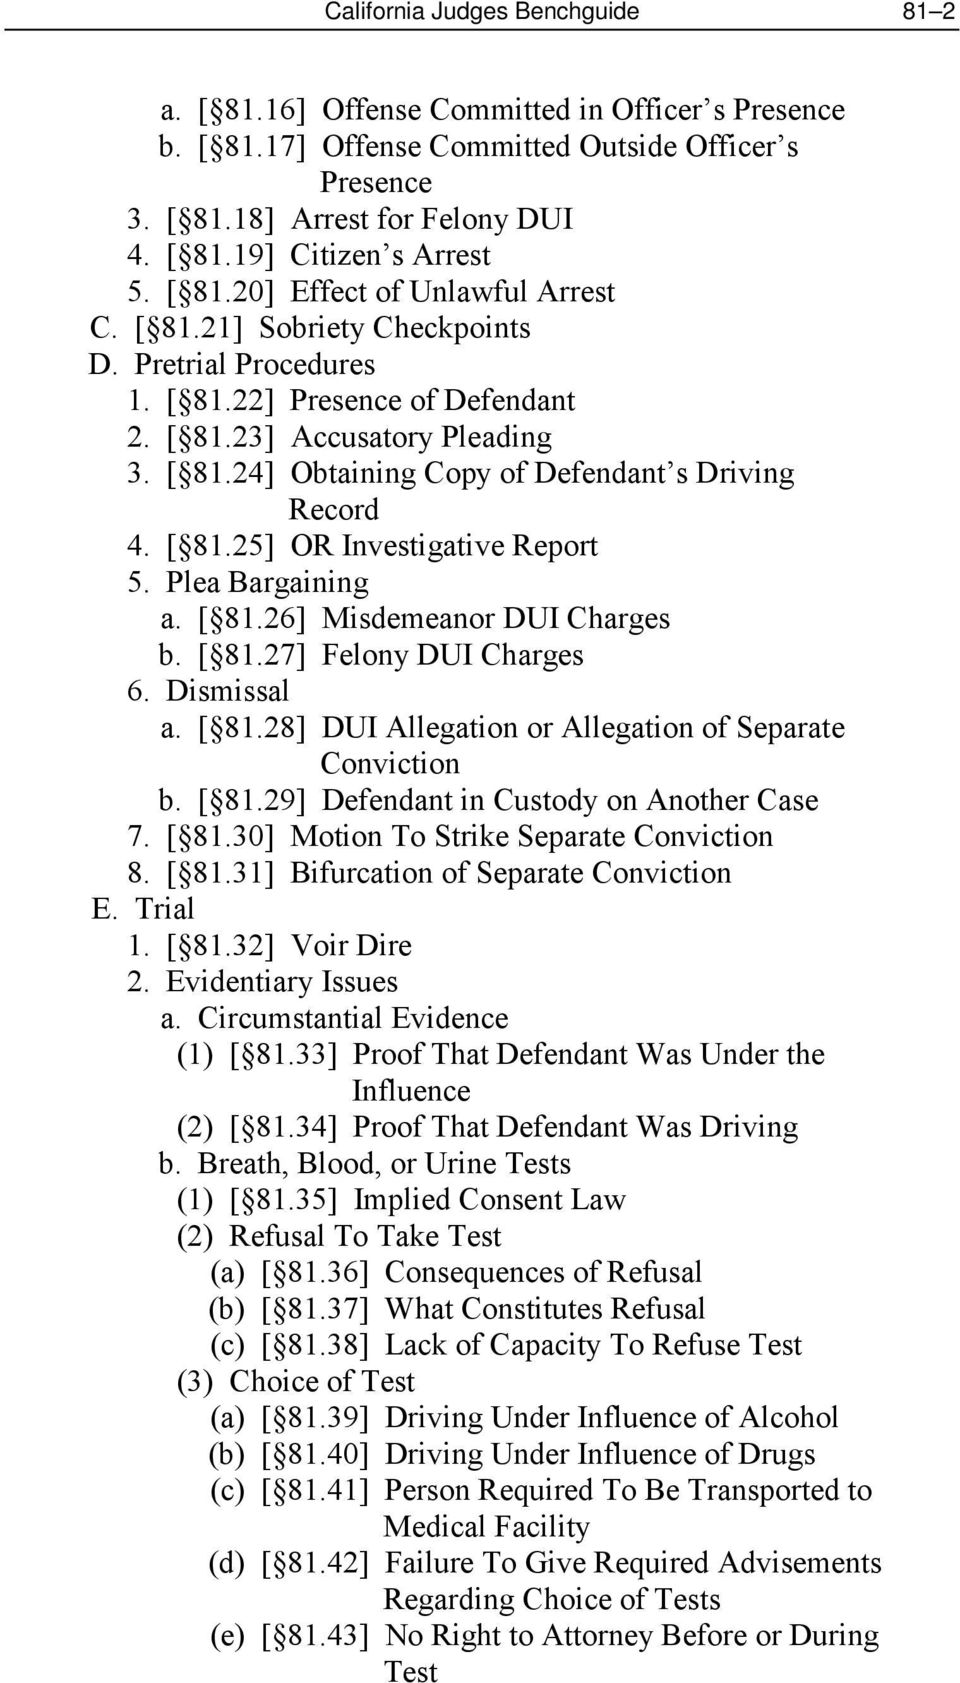 [ 81.25] OR Investigative Report 5. Plea Bargaining a. [ 81.26] Misdemeanor DUI Charges b. [ 81.27] Felony DUI Charges 6. Dismissal a. [ 81.28] DUI Allegation or Allegation of Separate Conviction b.